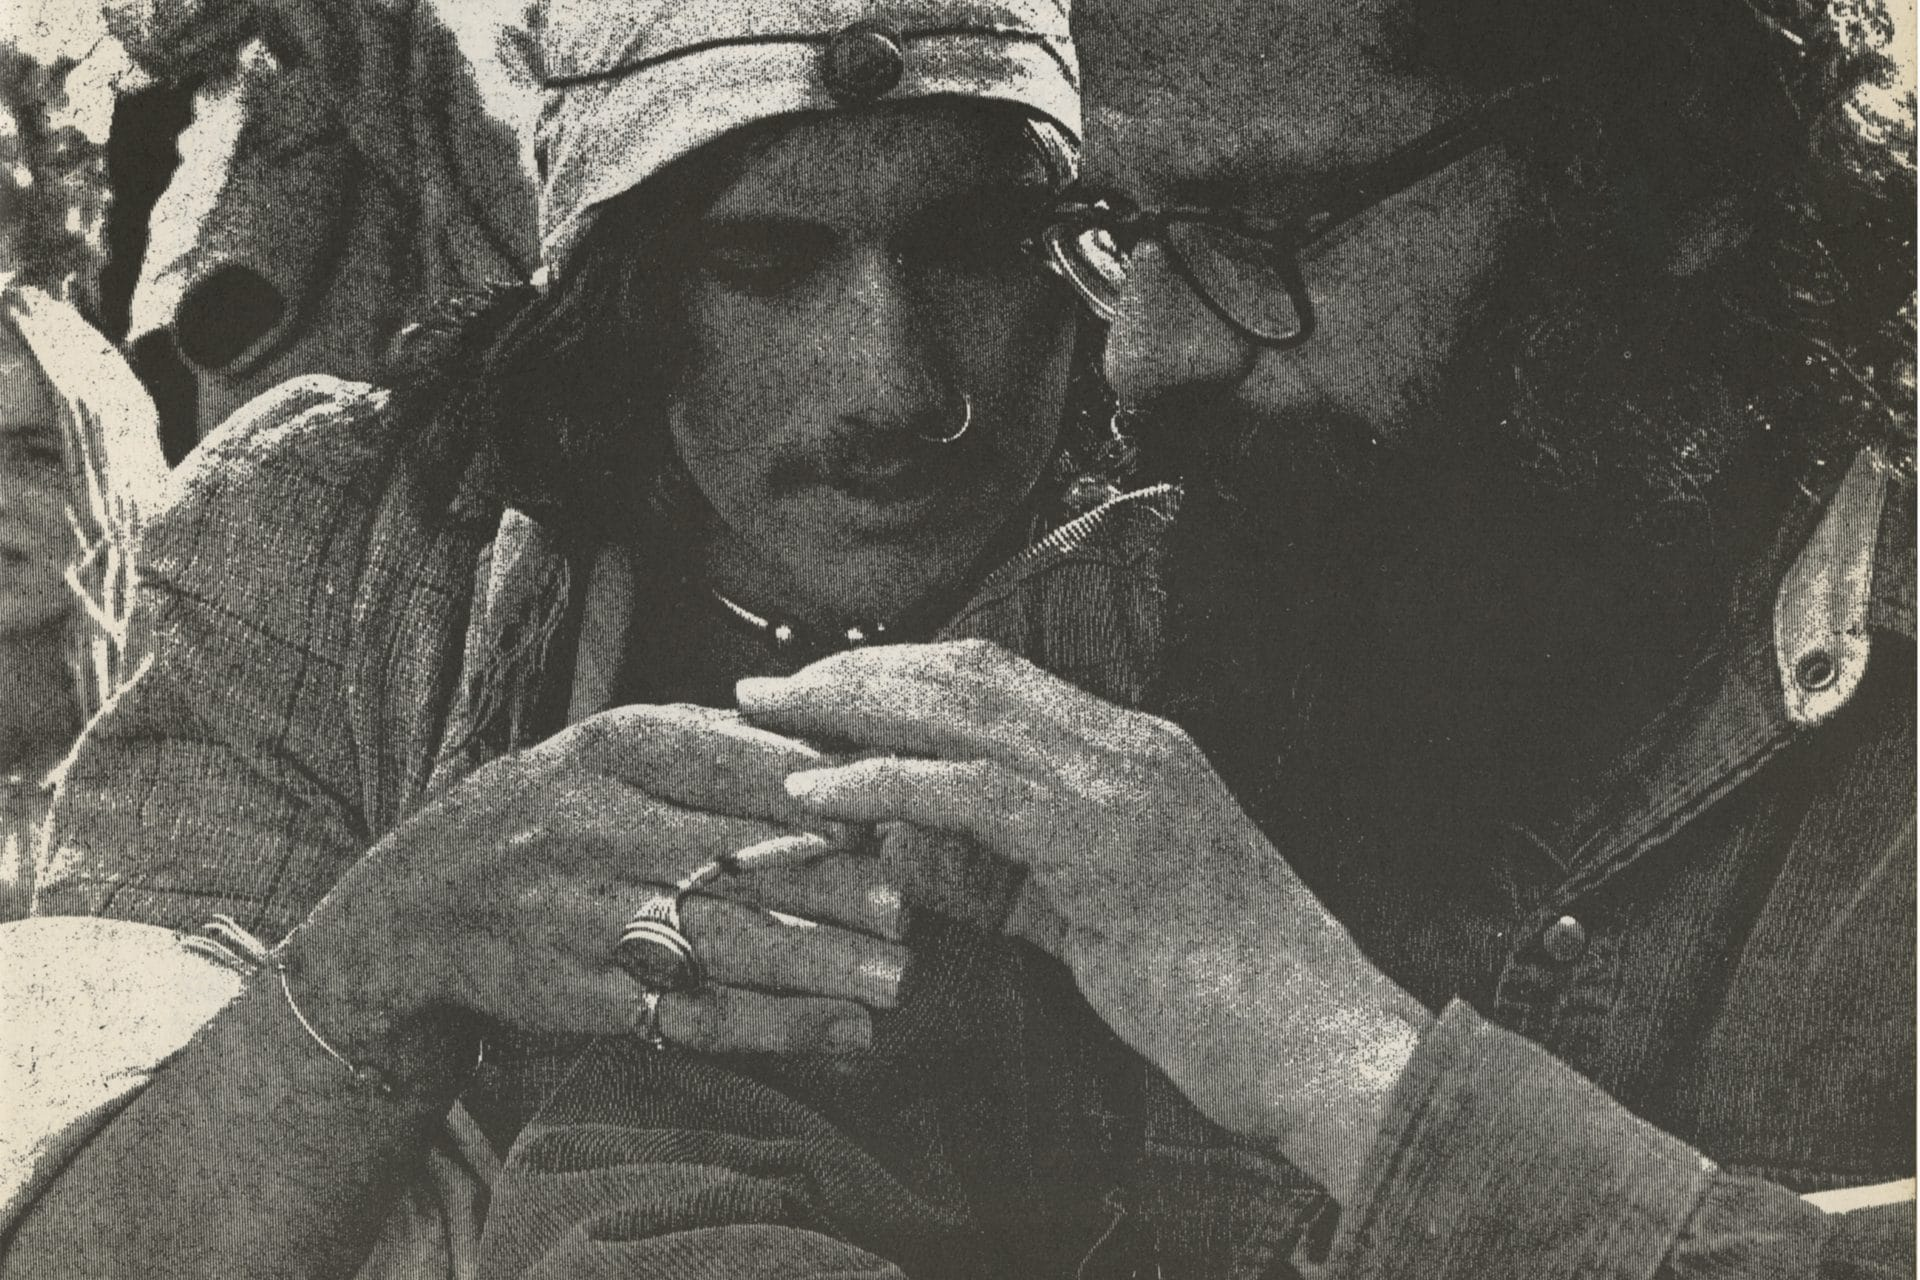 Allen Ginsberg (right), Beat poet and counter-culture icon